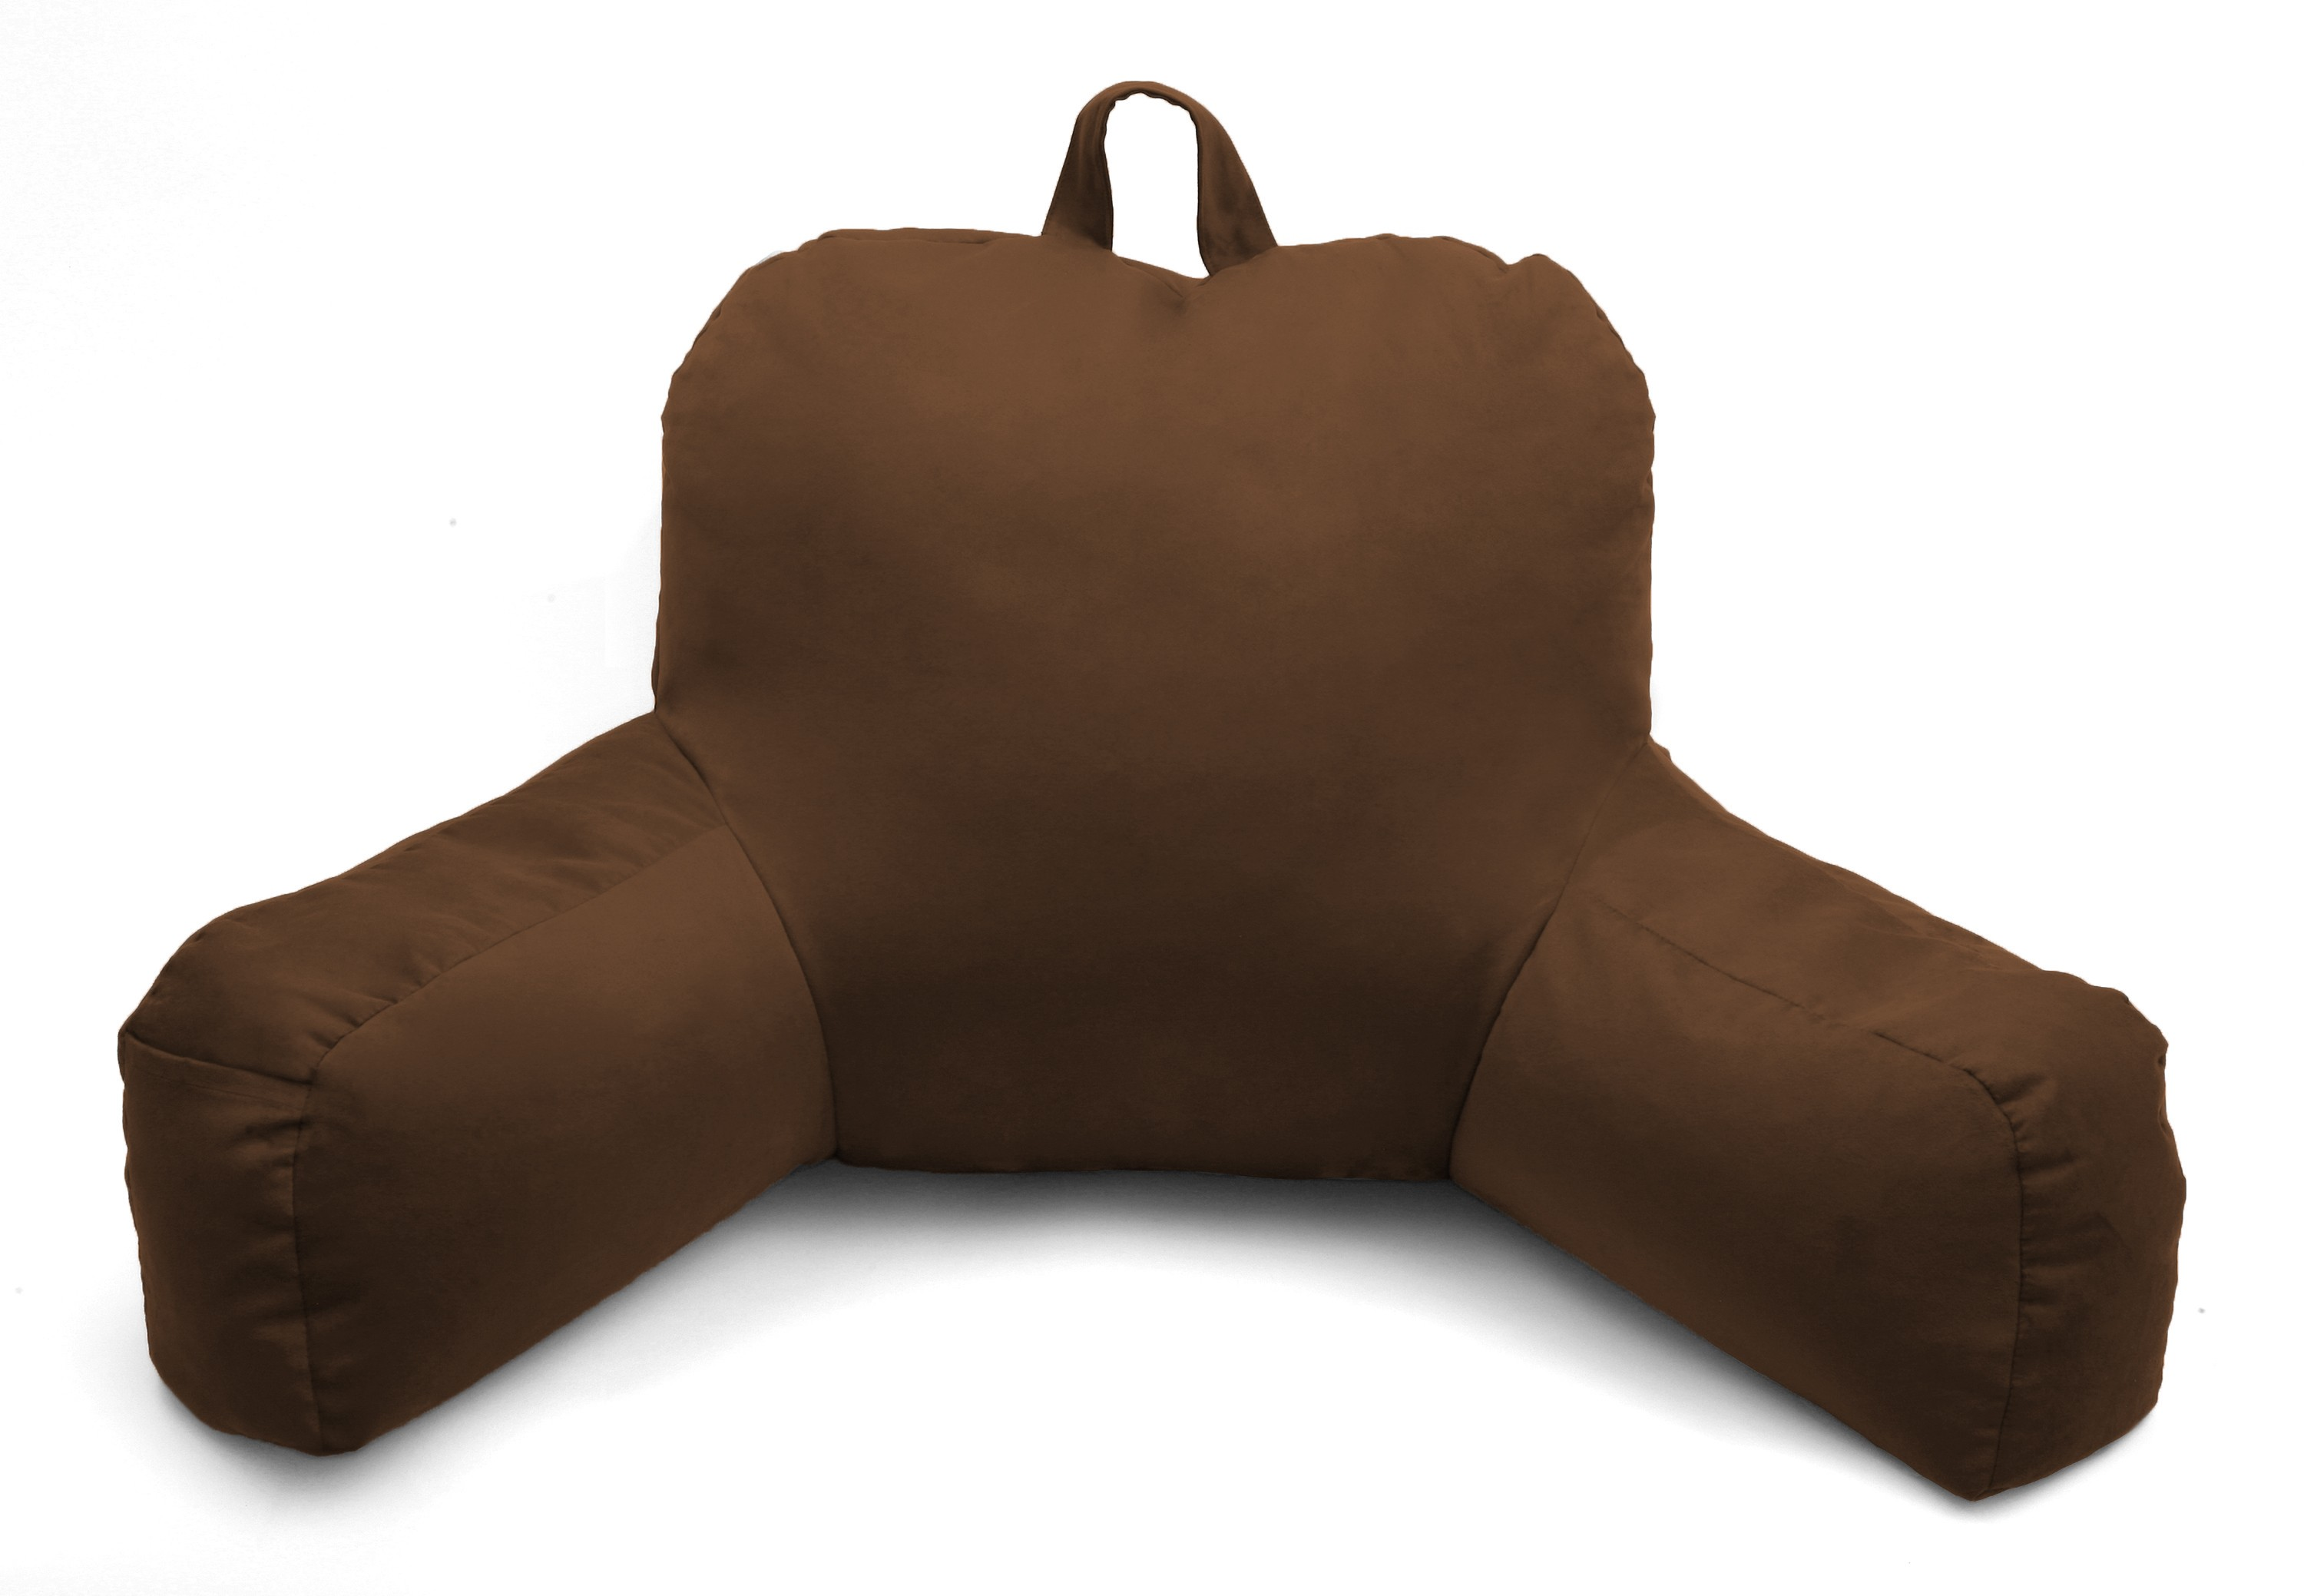 Terrific Deluxe Comfort Microsuede Porter Bedrest Lounge Pillow Airy Soft Microbeads Perfect For Bed And Dorm Rooms Wear Resistant Soft Microsuede Bed Andrewgaddart Wooden Chair Designs For Living Room Andrewgaddartcom